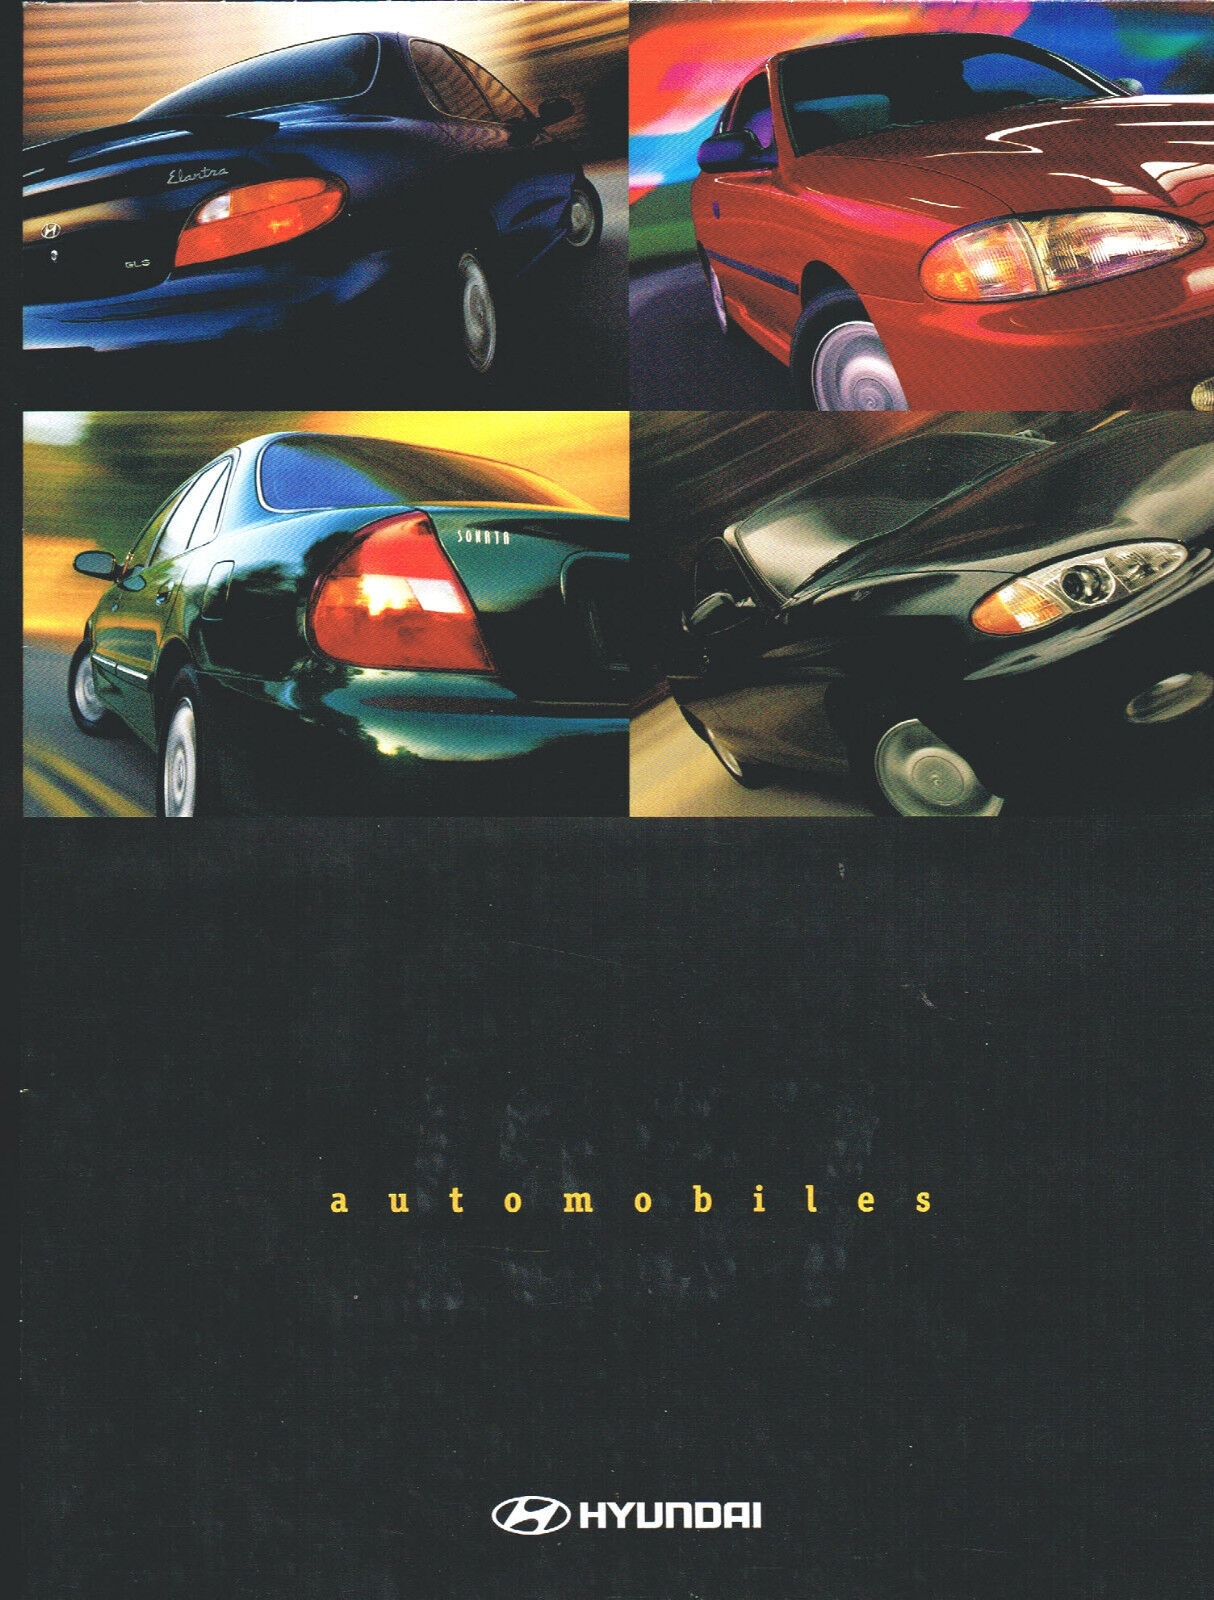 1997 HYUNDAI ACCENT / SONATA / ELANTRA Brochure / Pamphlet with TIBURON  Poster 1 of 3Only 1 available ...